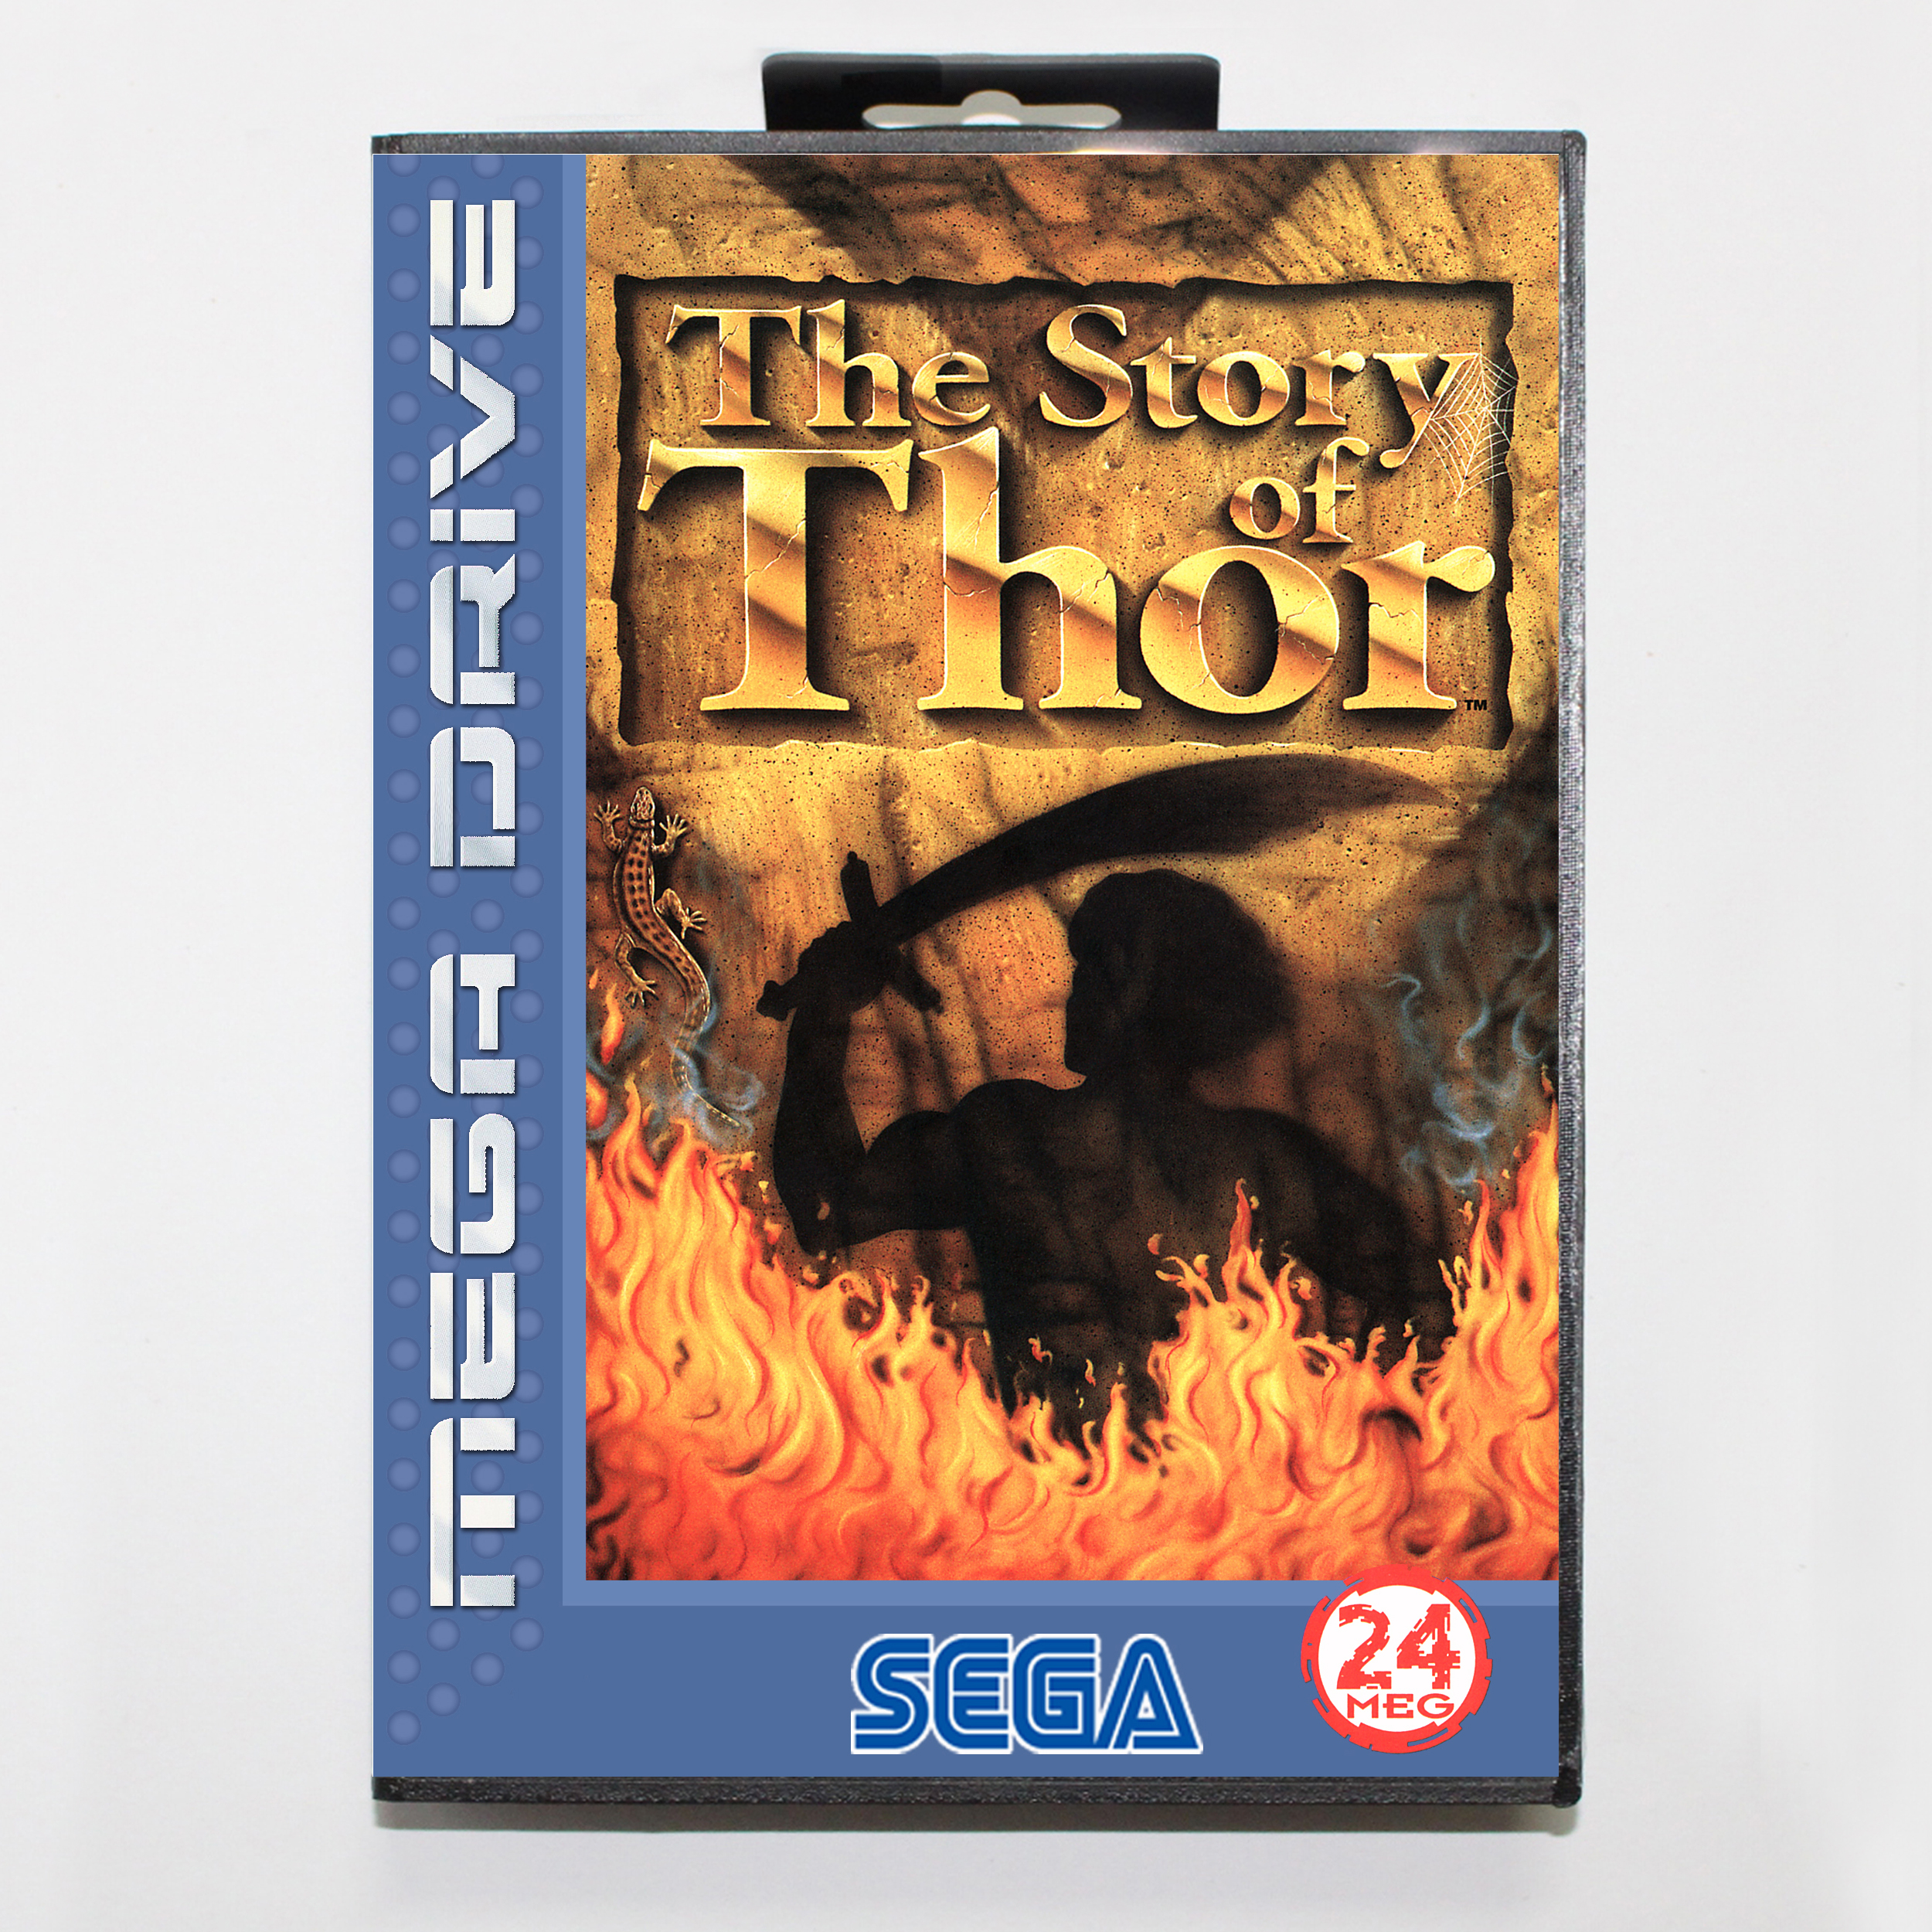 The Story of Thor PAL-E Boxed Version 16bit MD Game Card For Sega MegaDrive Sega Genesis Systems image